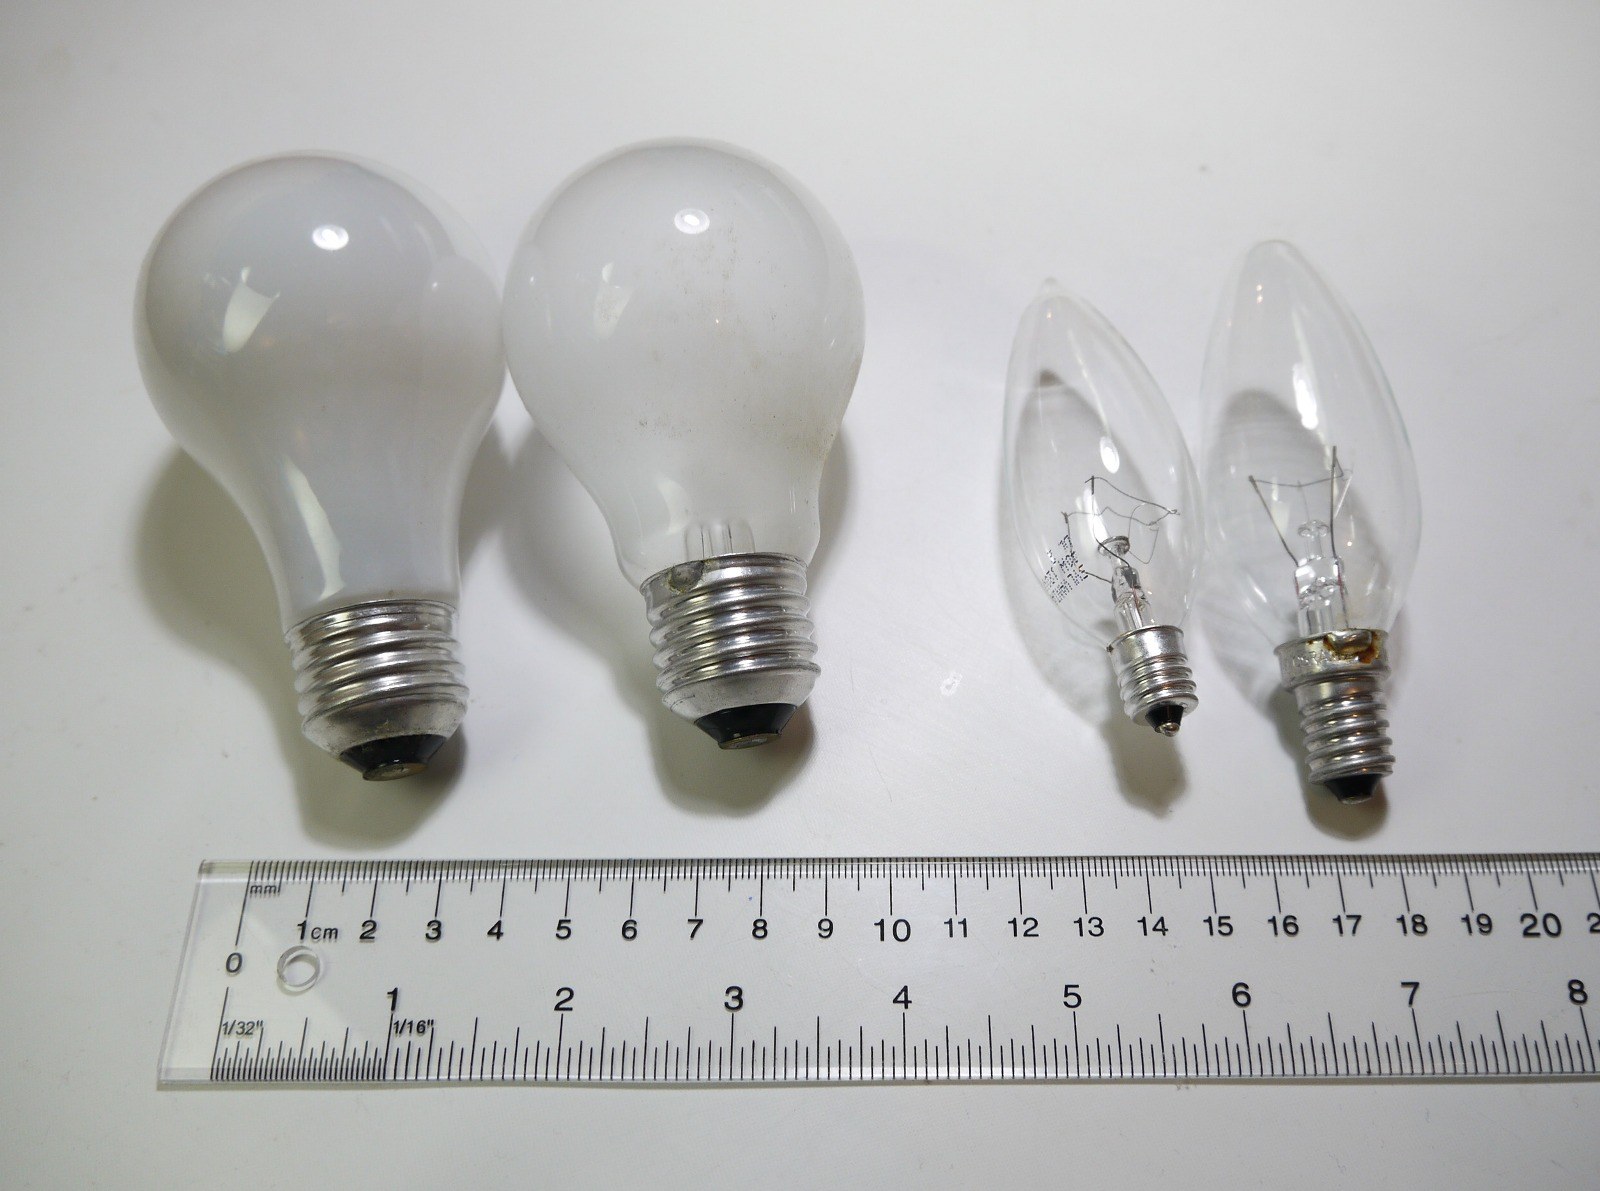 Four Of The Most Common Light Bulbs: US A19 With E26, European E27, US B10  With E12, European E14